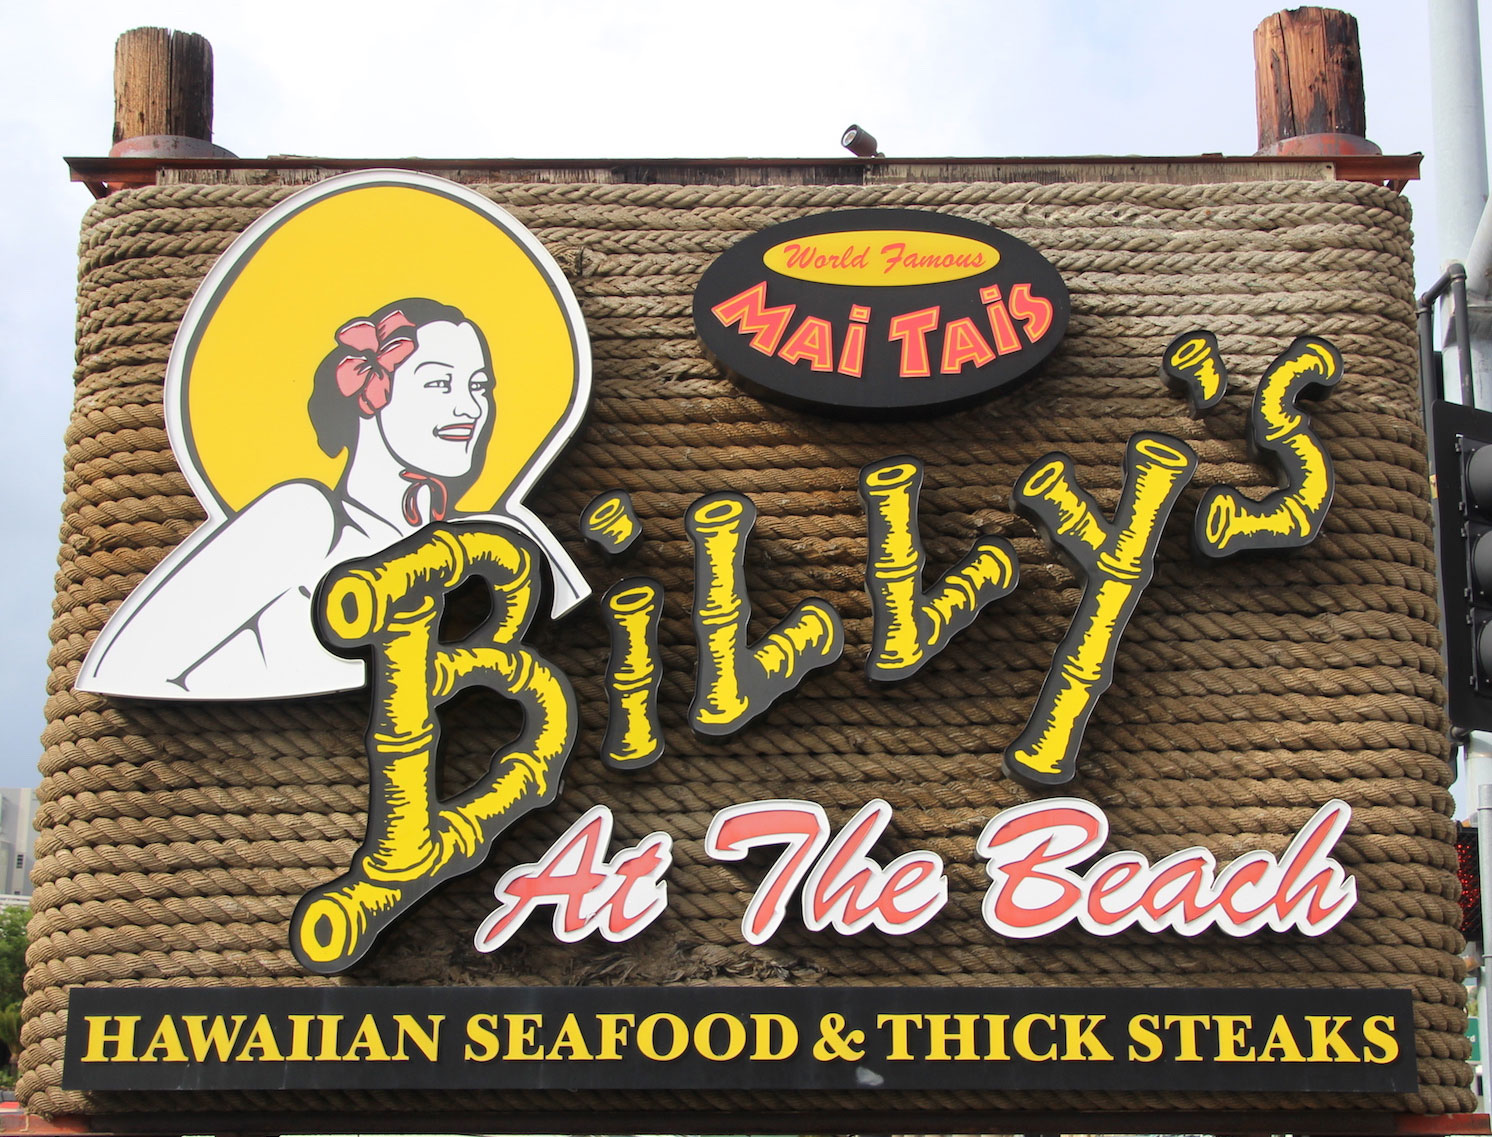 Billy's At the Beach photo by Lana Johnson